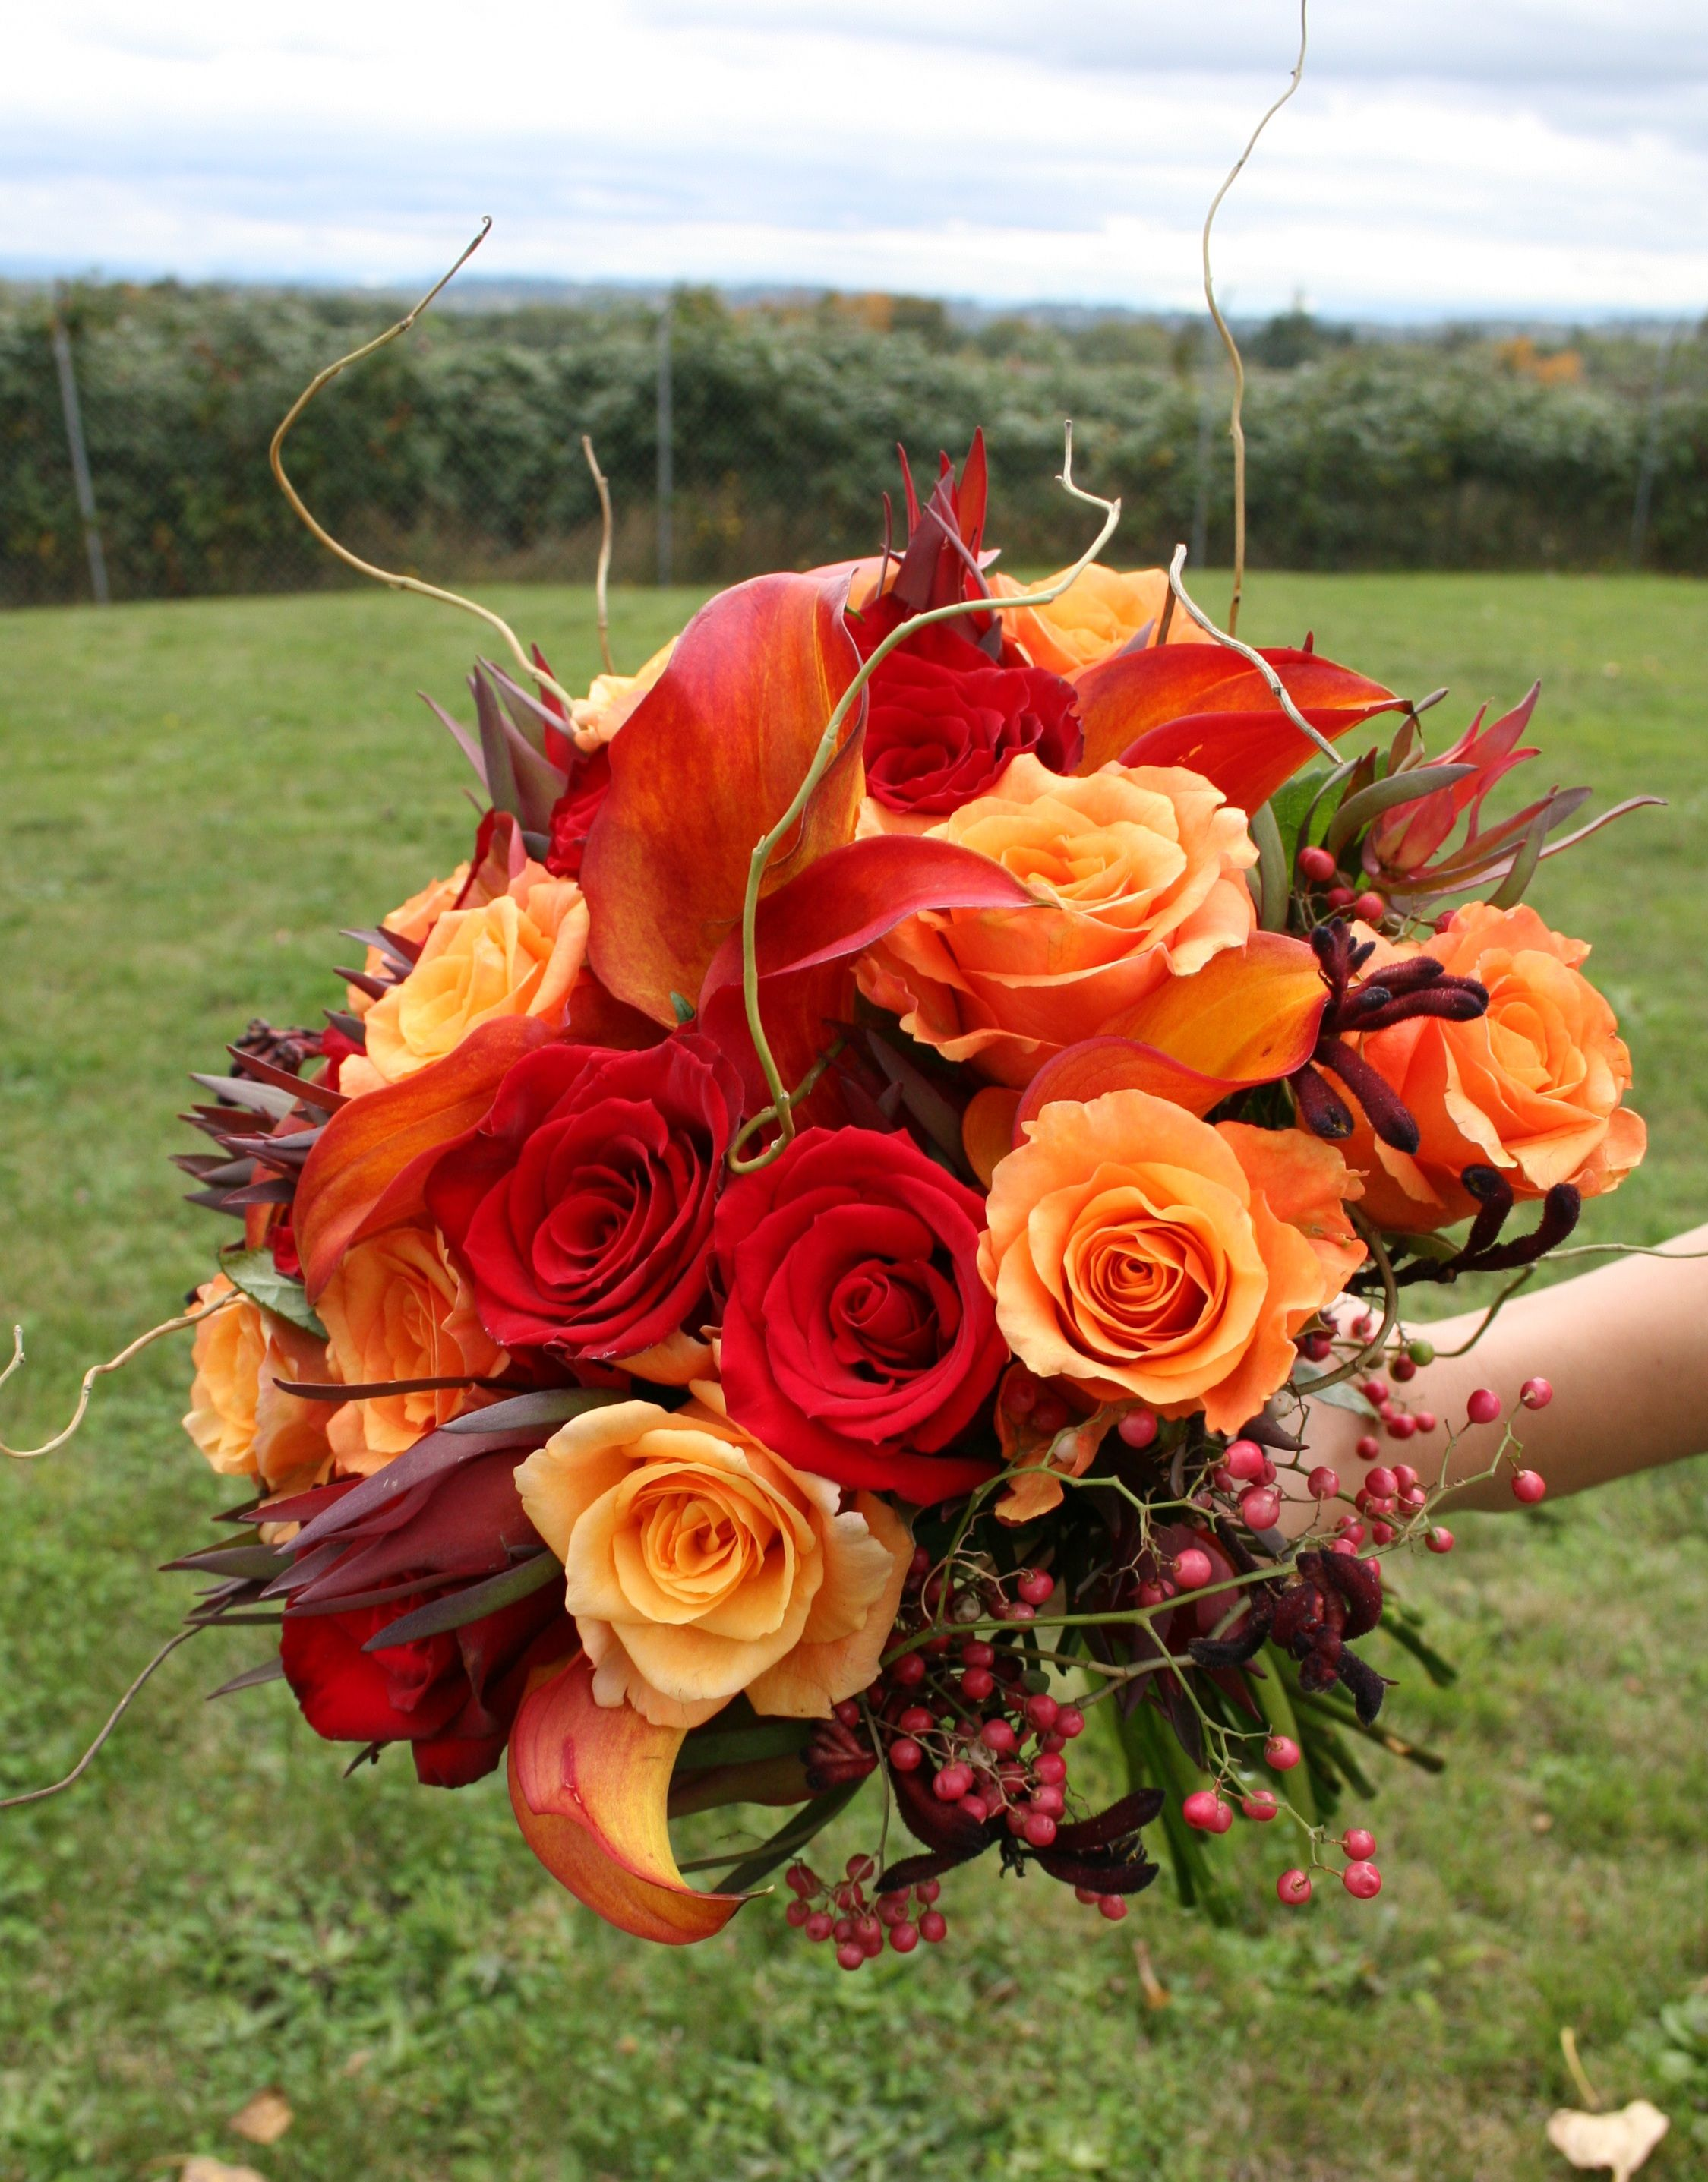 Fall Texture Wedding Flower Bouquet Bridal Flowers Add Pic Source On Comment And We Will Update It Can Create This Beautiful